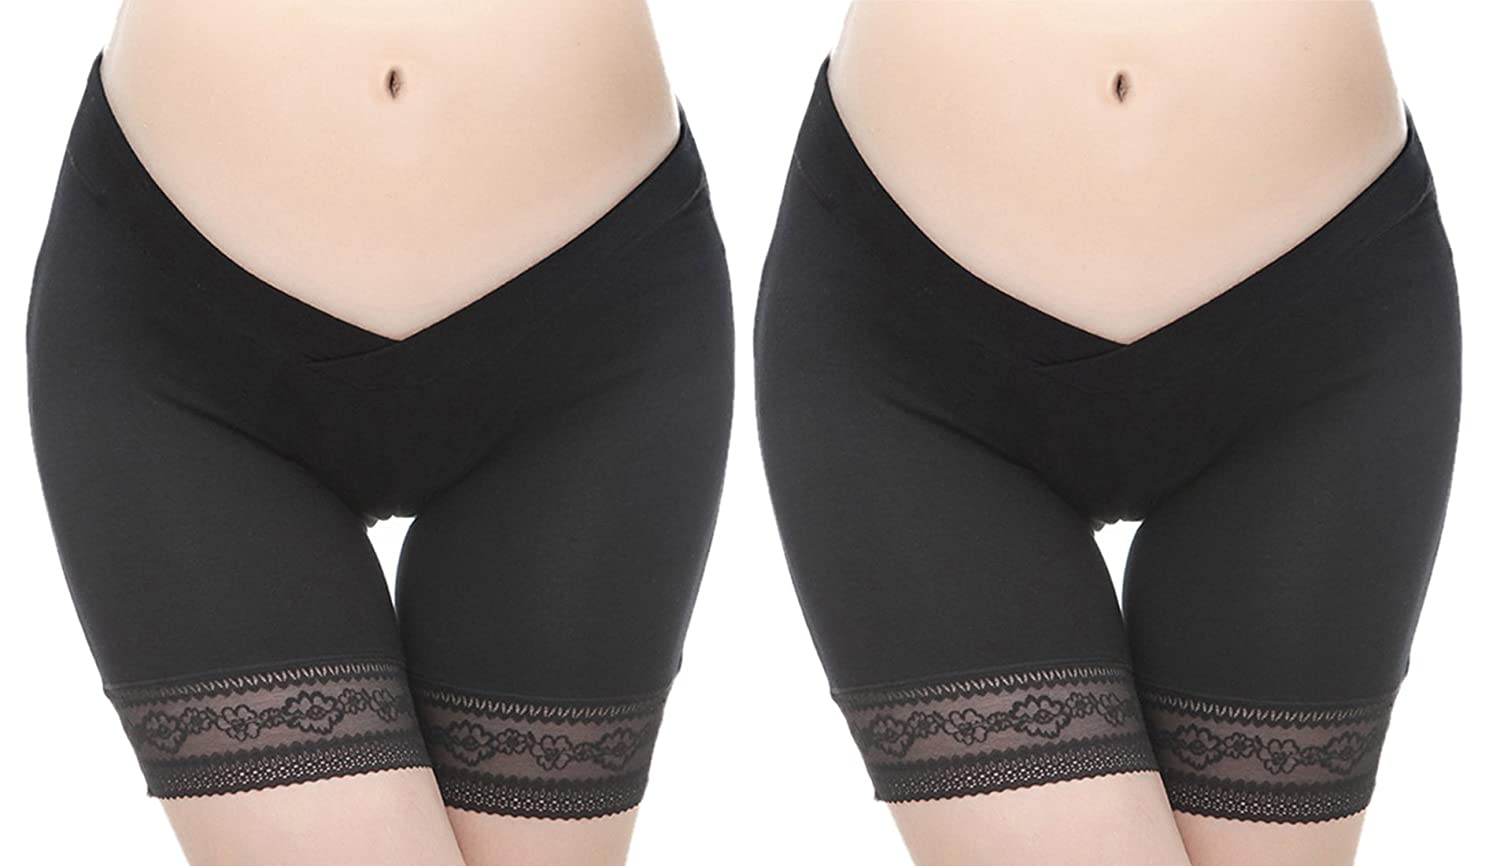 FEOYA 2 Pack Maternity Underwear Breathable Pregnancy Shorts Low Wasit Shorts Waist Belly Support Underpants